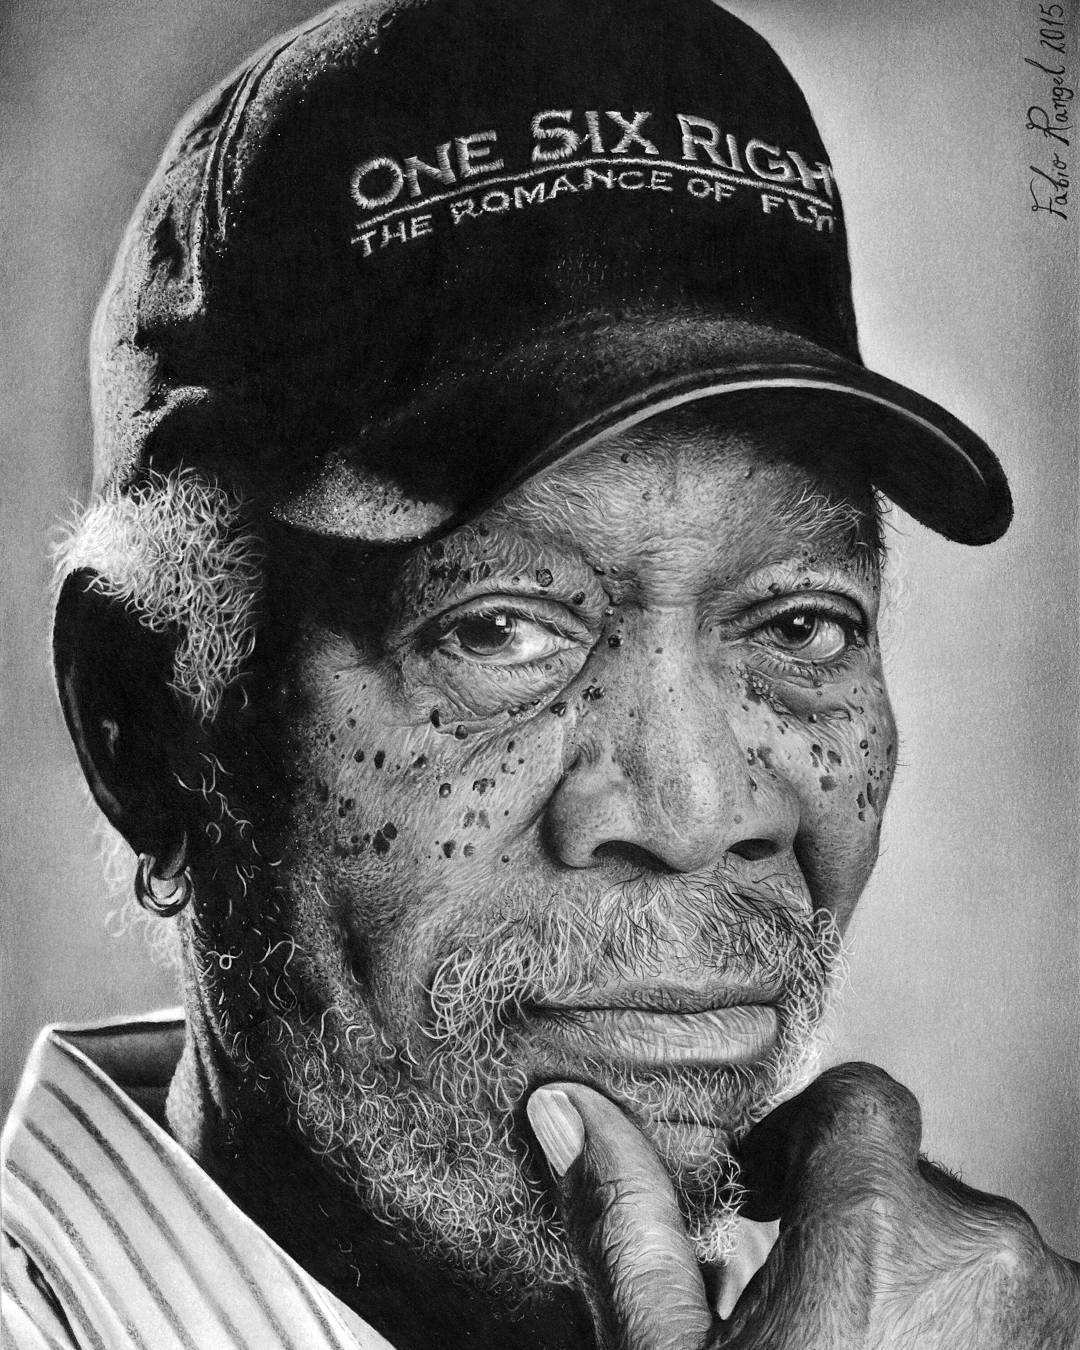 16-Morgan-Freeman-Fabio-Rangel-Drawings-of-Protagonists-from-TV-and-Movies-www-designstack-co